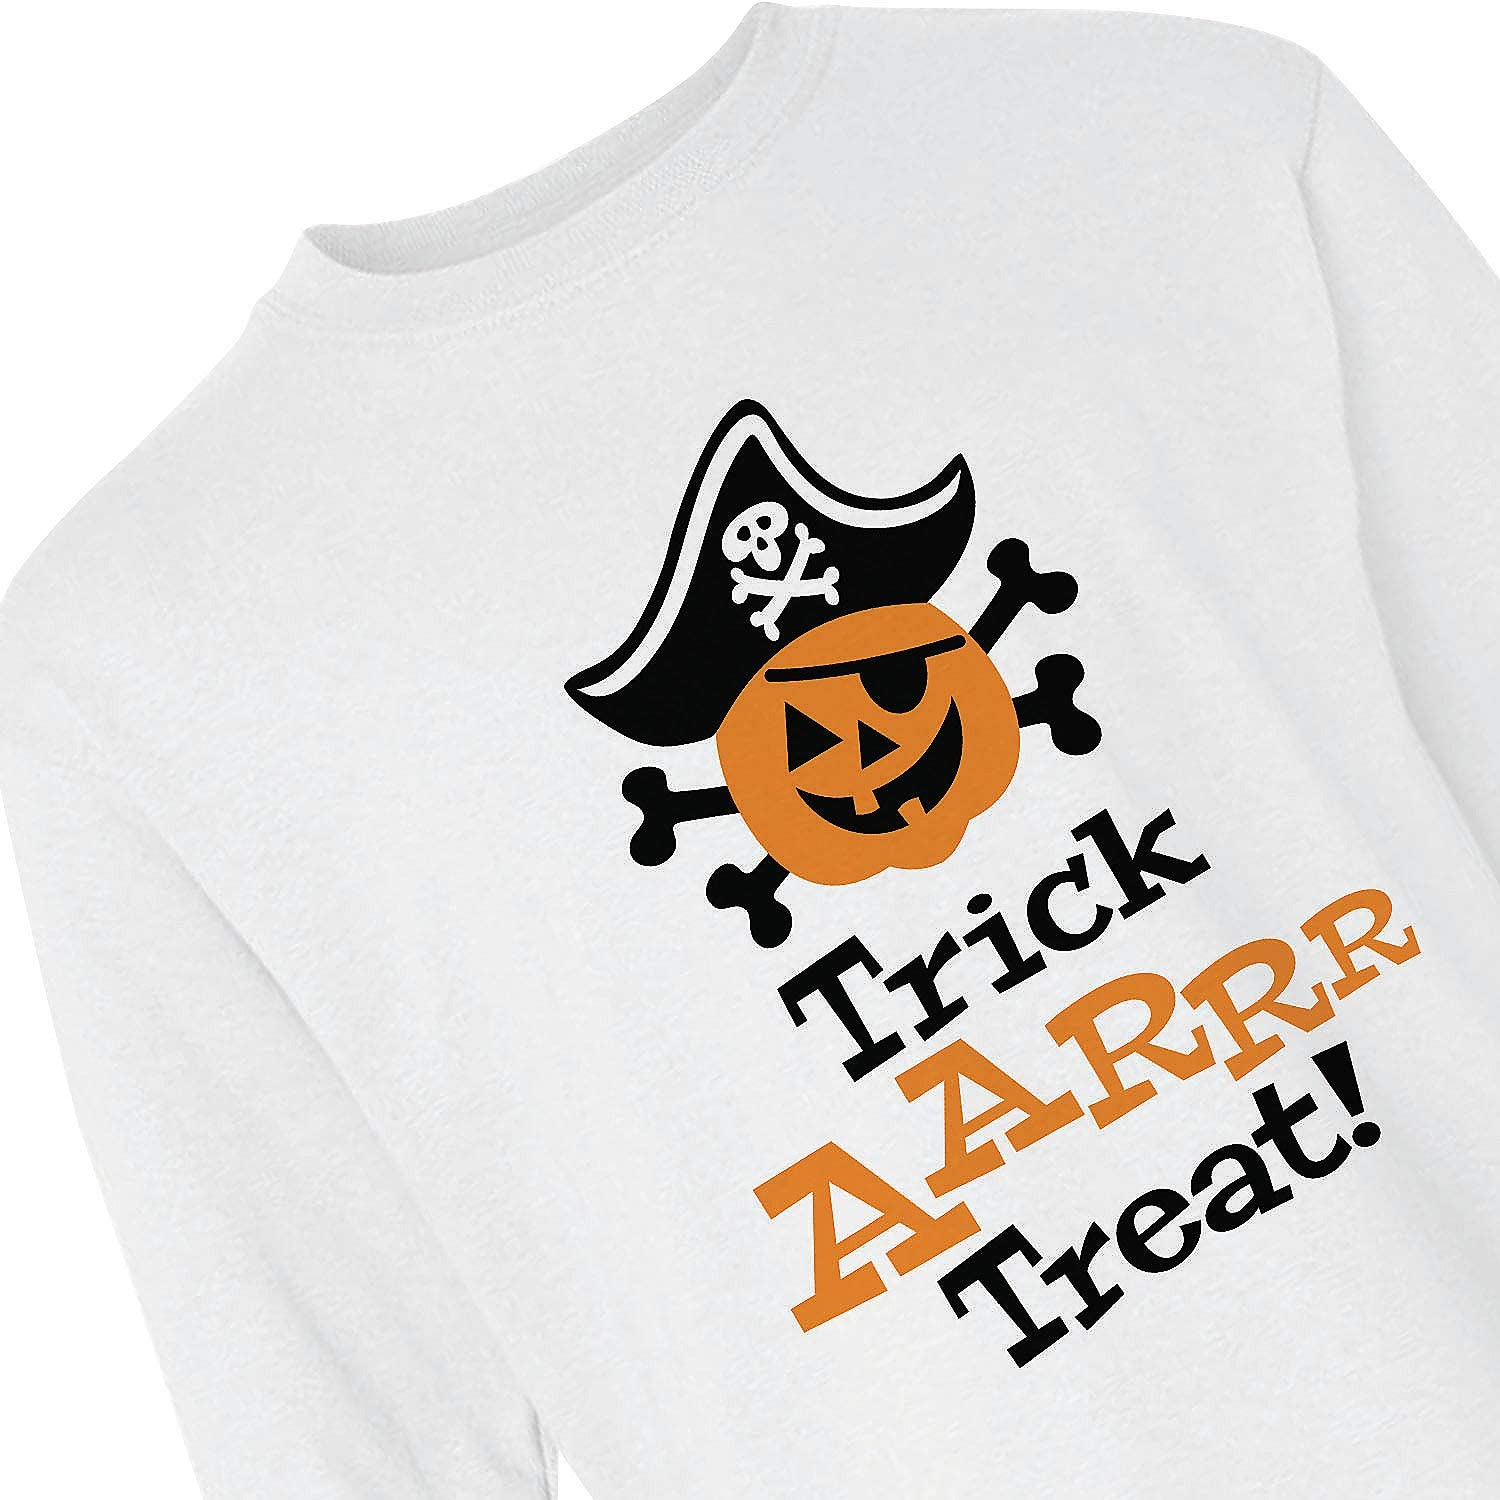 Trick-or-Treat Youth Long Sleeve T-Shirt - Large - Apparel Accessories - 1 Piece